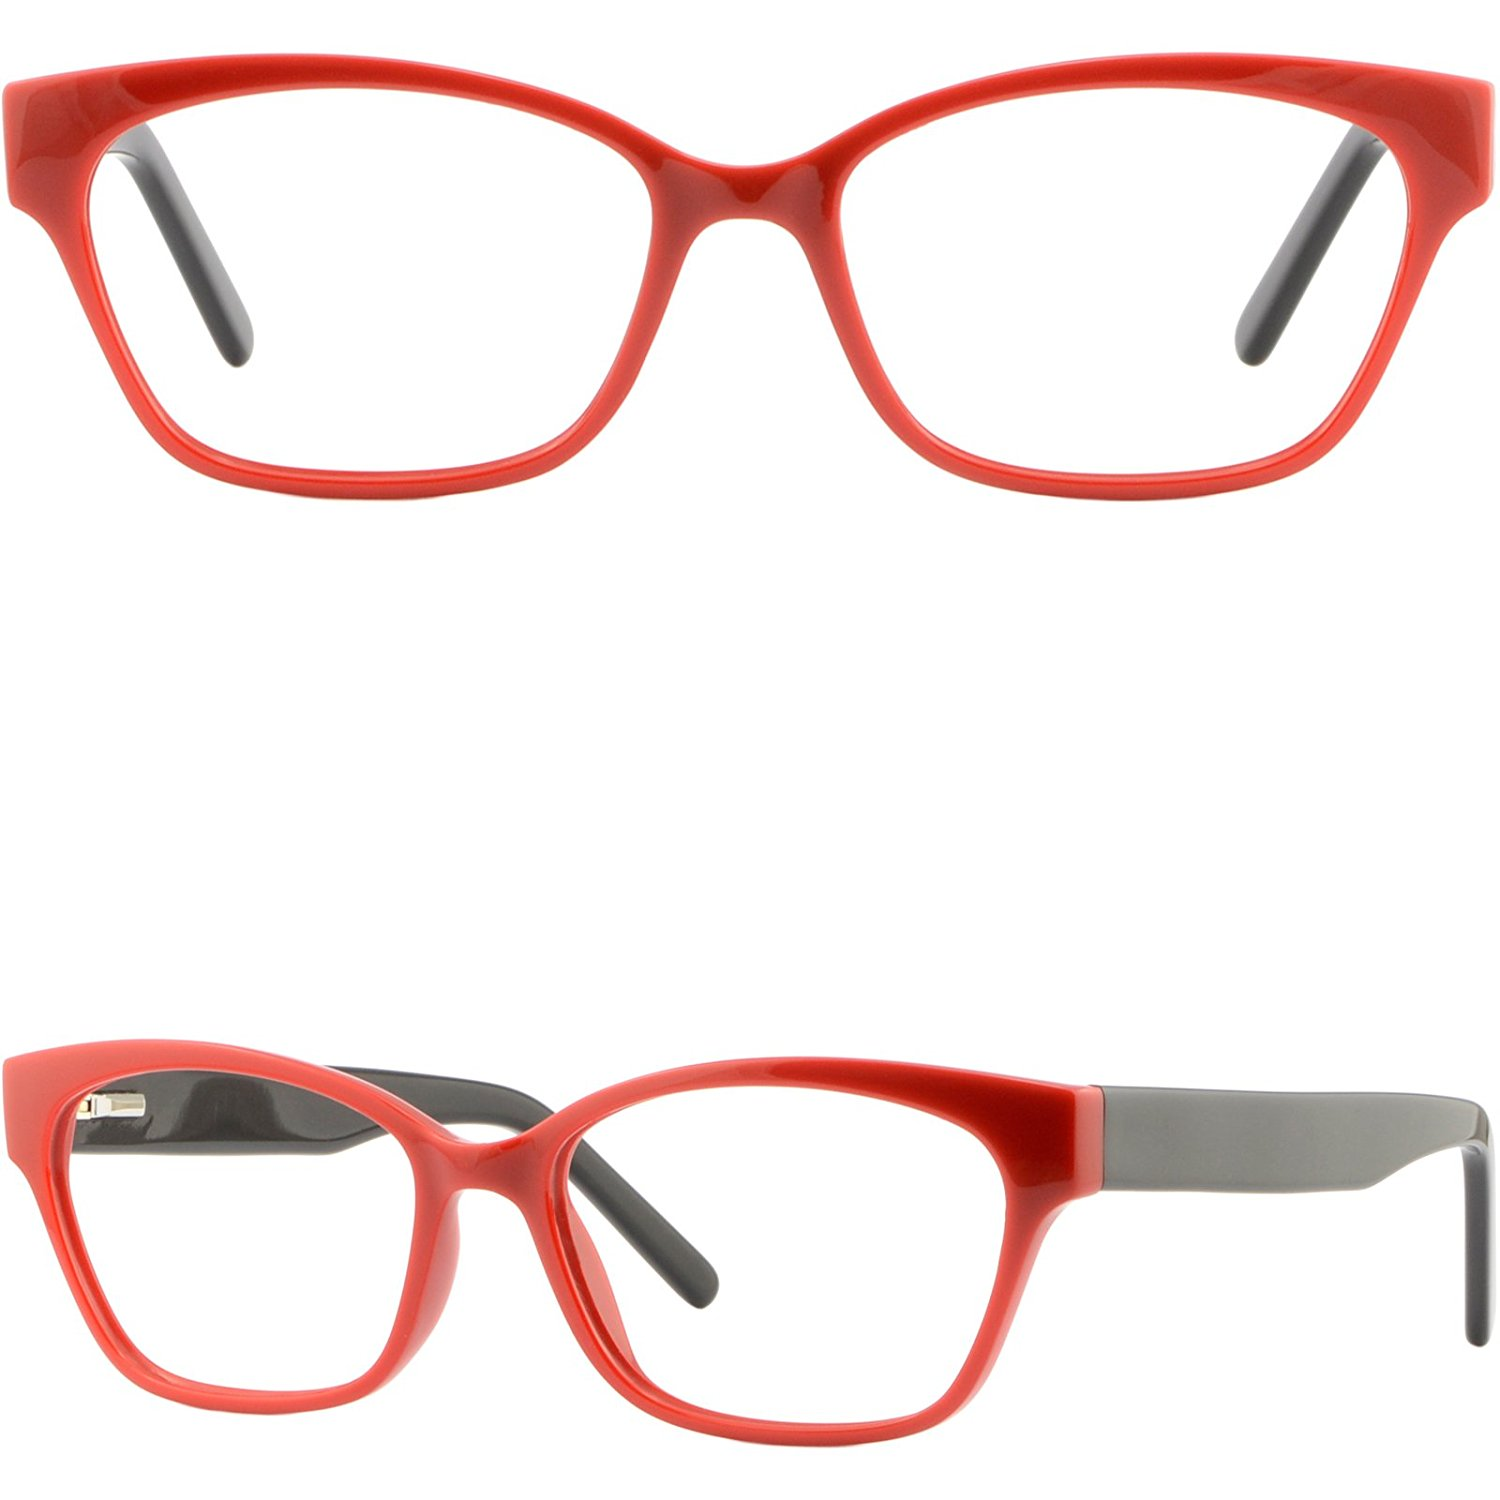 31dd3410ea Square Womens Acetate Frame Plastic Eyeglasses Glasses Spring Hinges Red  Glasses